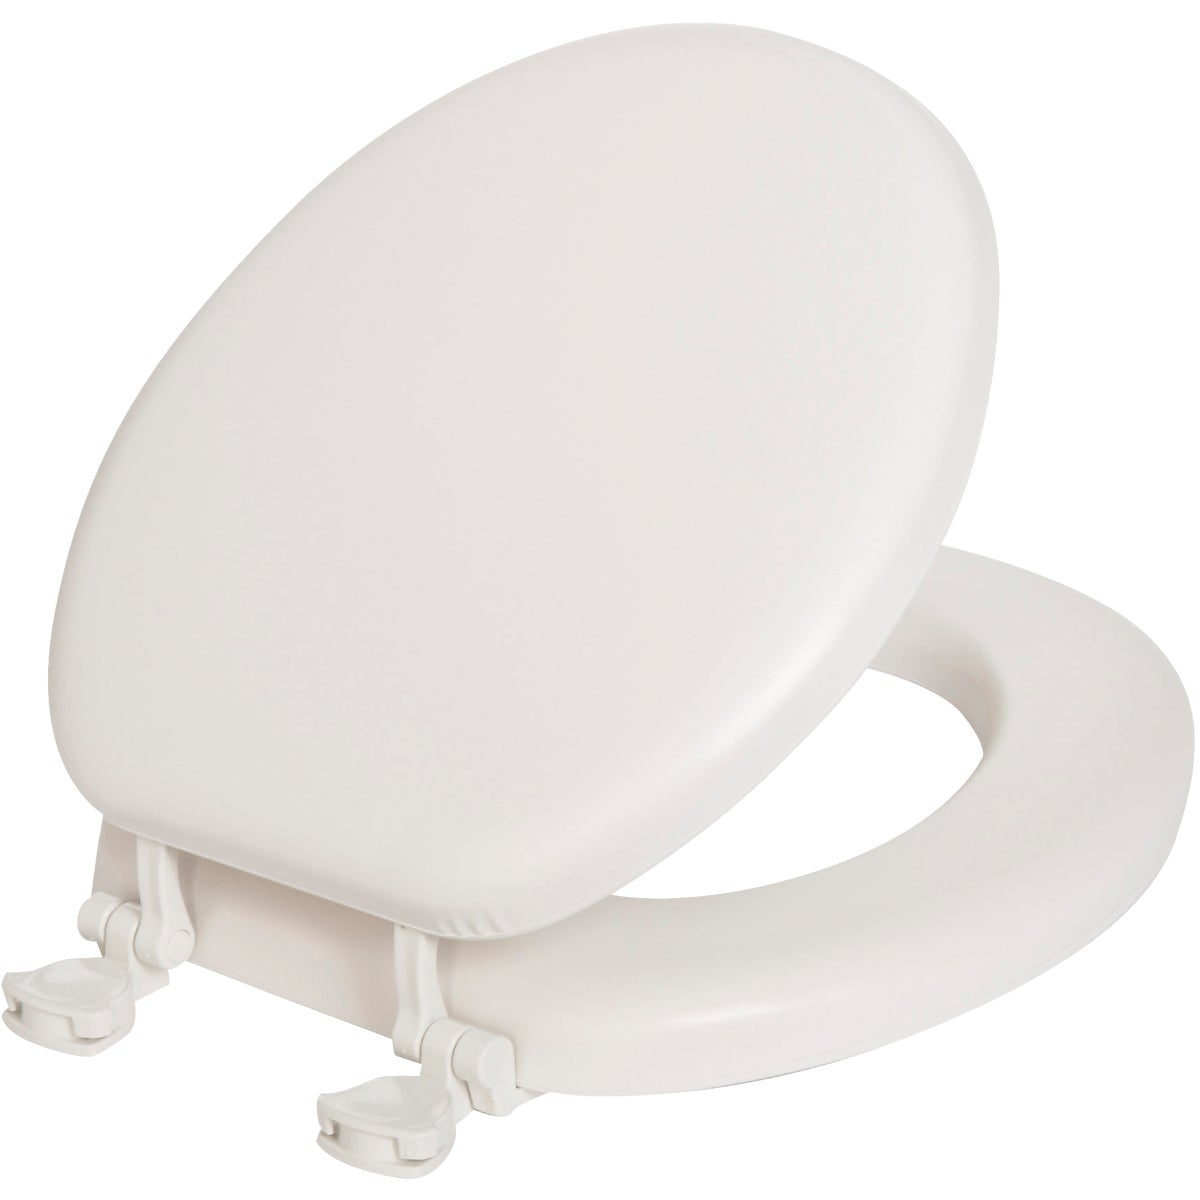 WHITE SOFT ROUND SEAT - 13EC-000 by Bemis Mfg